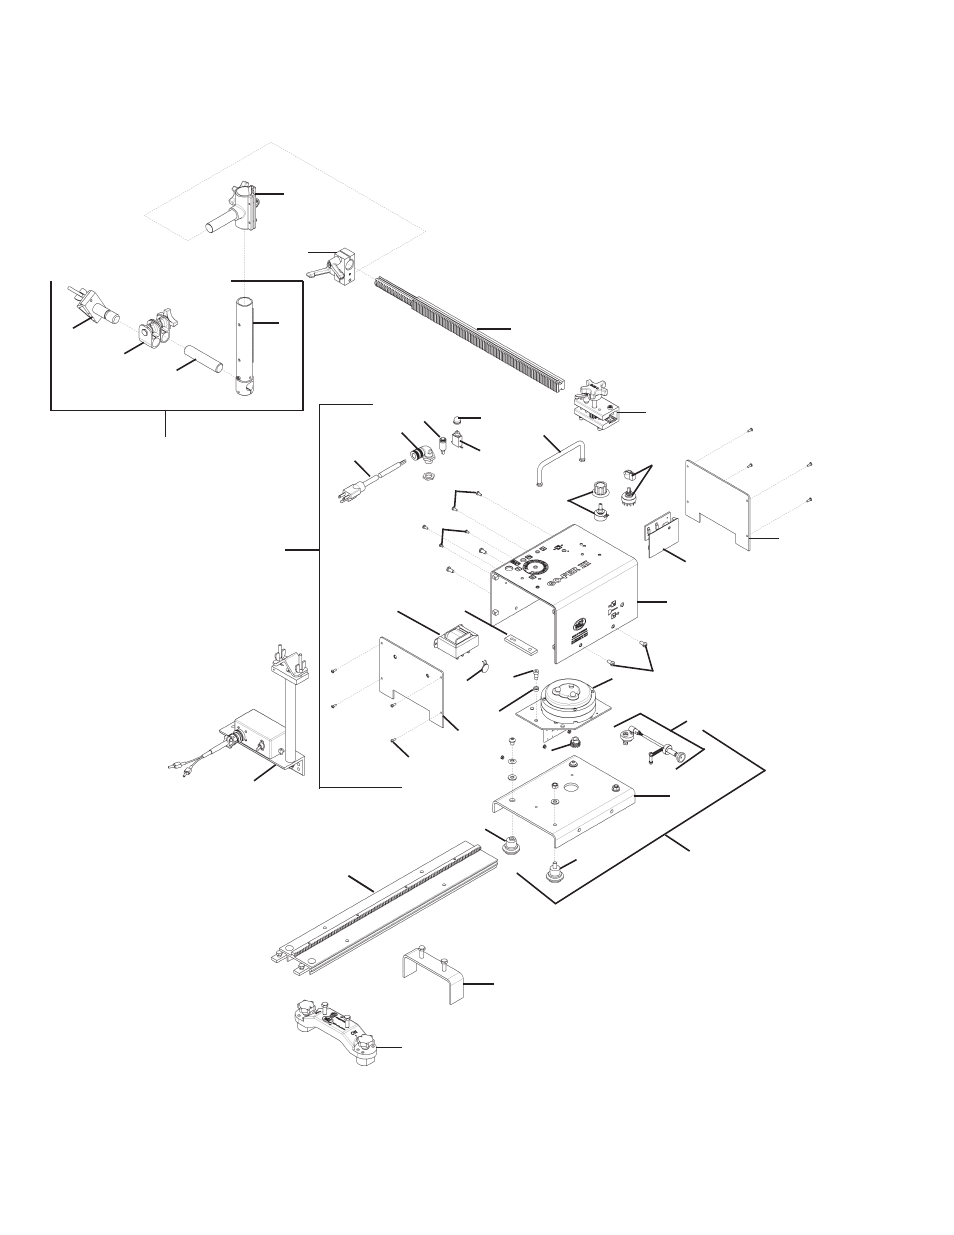 12.....gof-3240-wd / exploded view, Gof-3240-wd